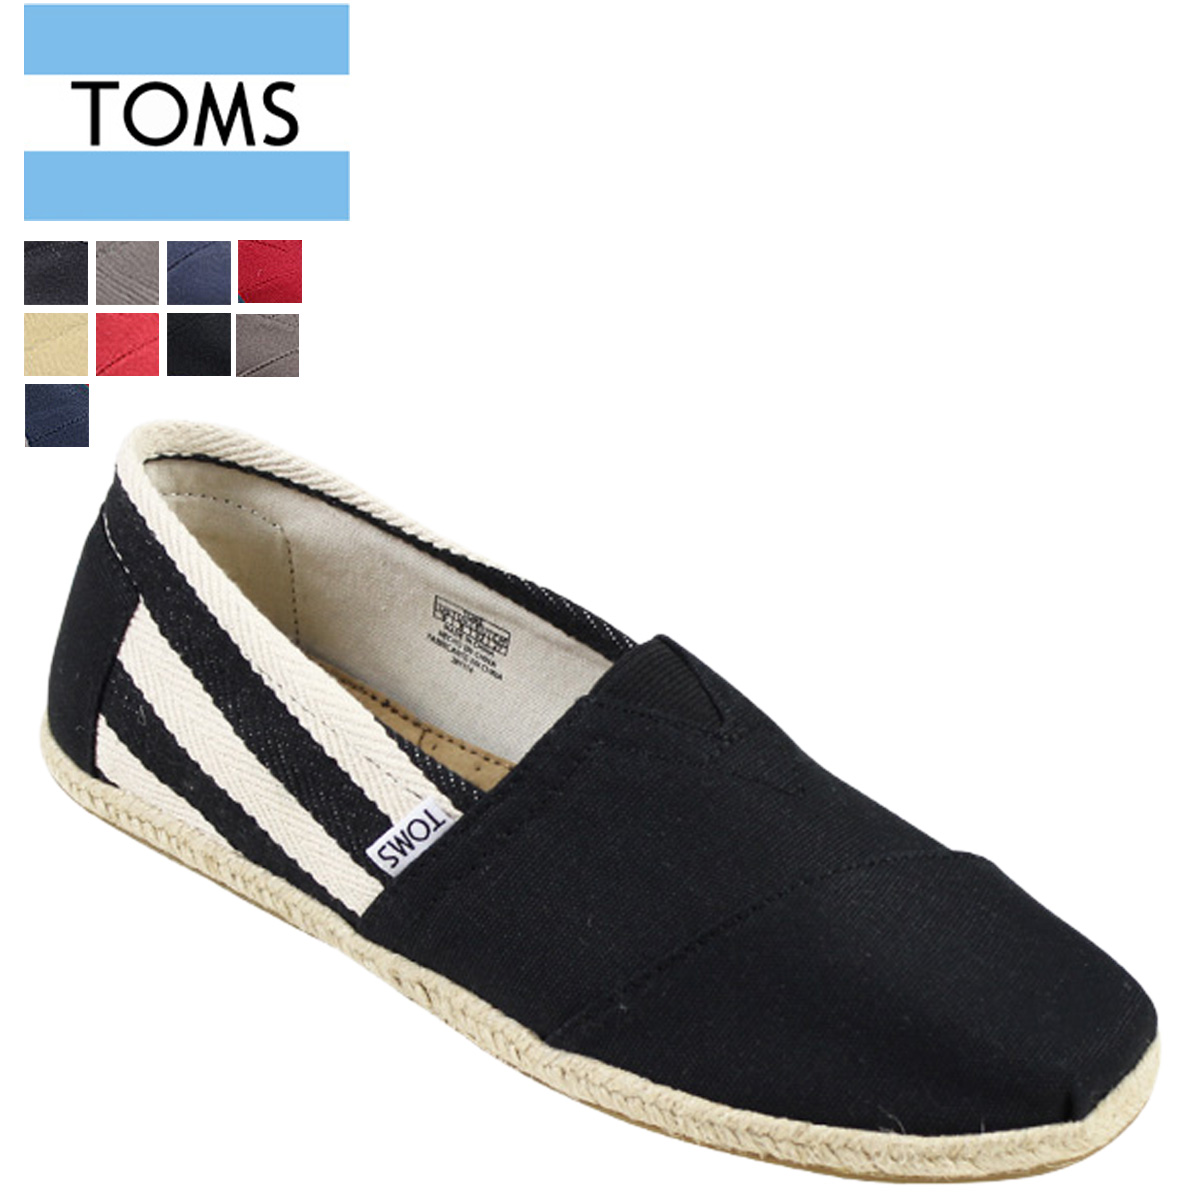 995619c5001 □A brand name: (Thoms shoes) TOMS SHOES □A brand name: UNIVERSITY MEN'S  CLASSICS □A country of origin: CHINA □A comparative price: Brand official  site ...